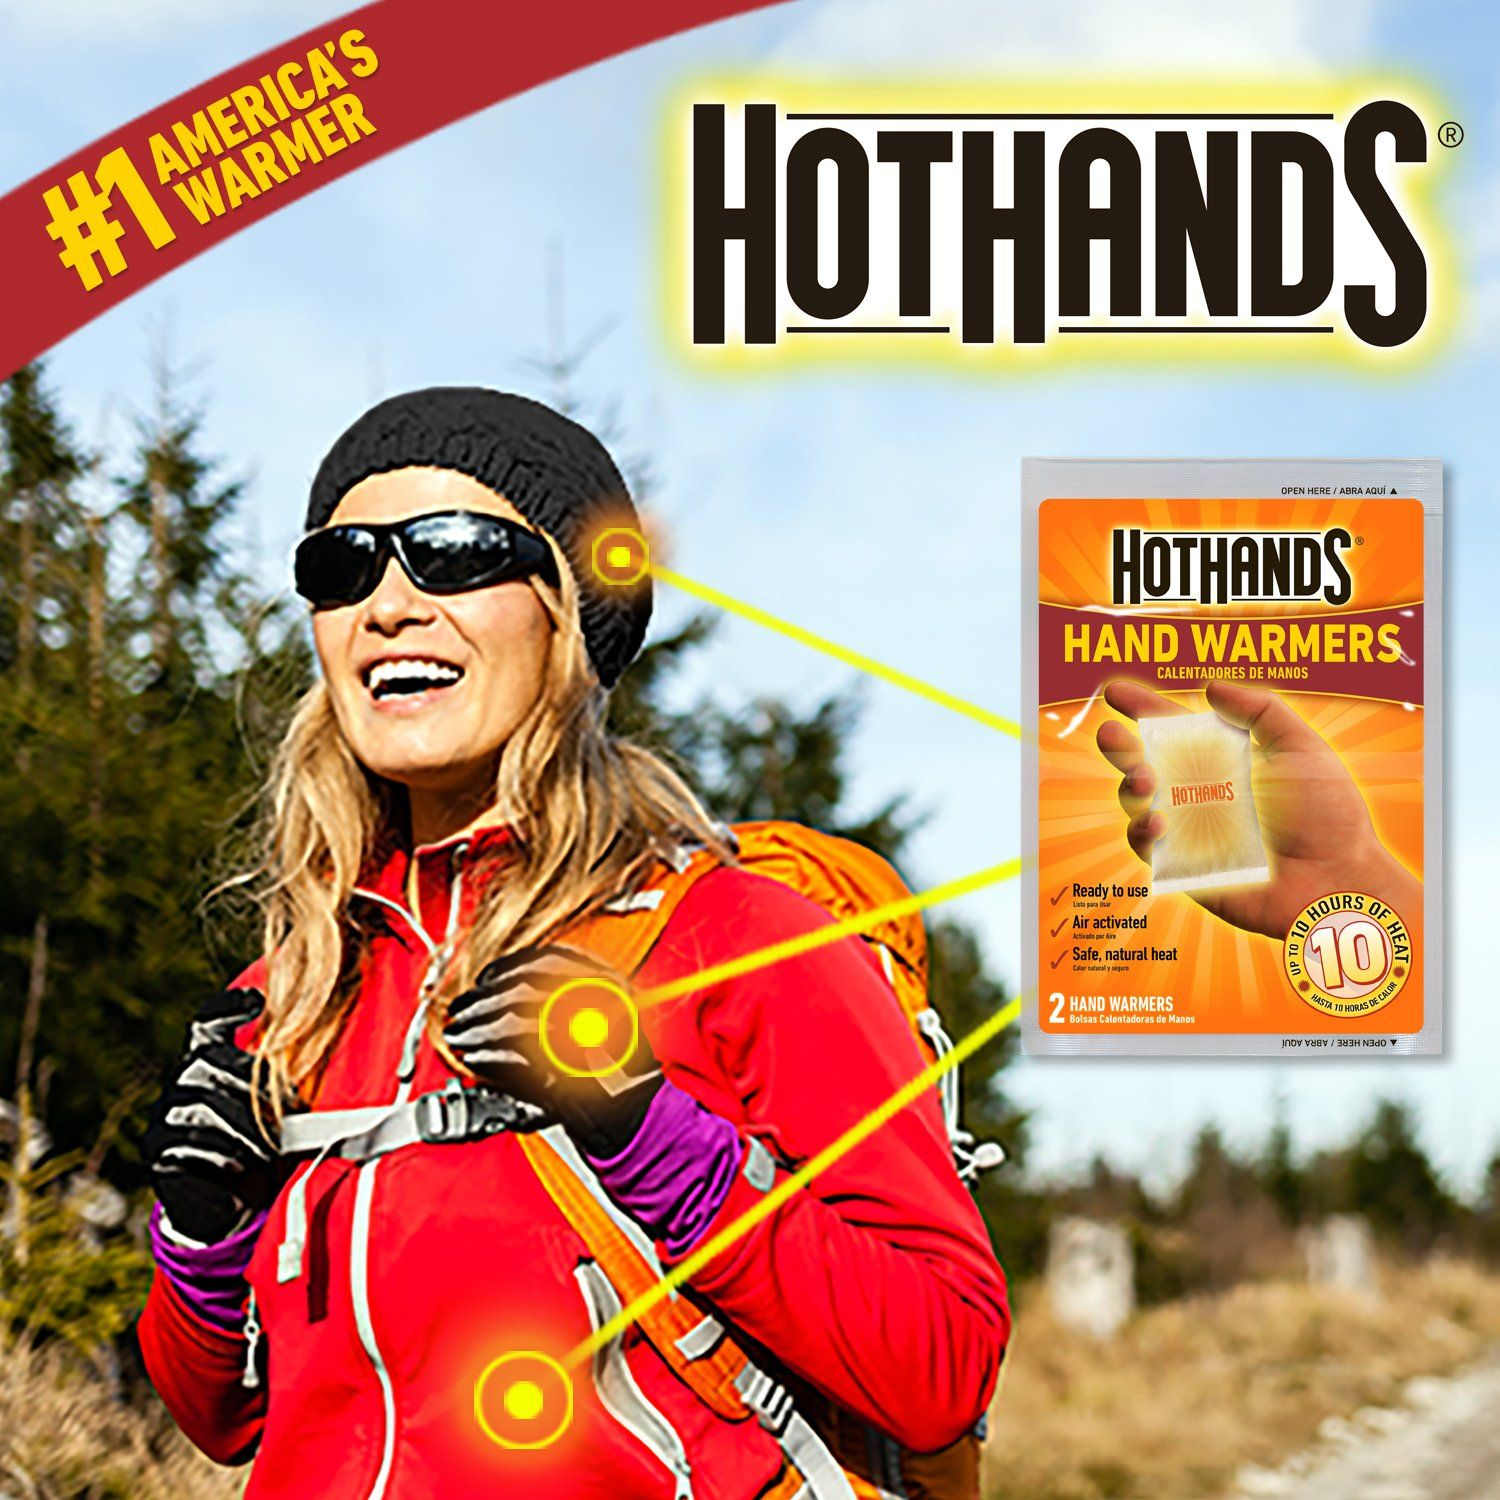 HotHands Body /& Hand Super Warmers Long Lasting Safe Natural Odorless Air Up